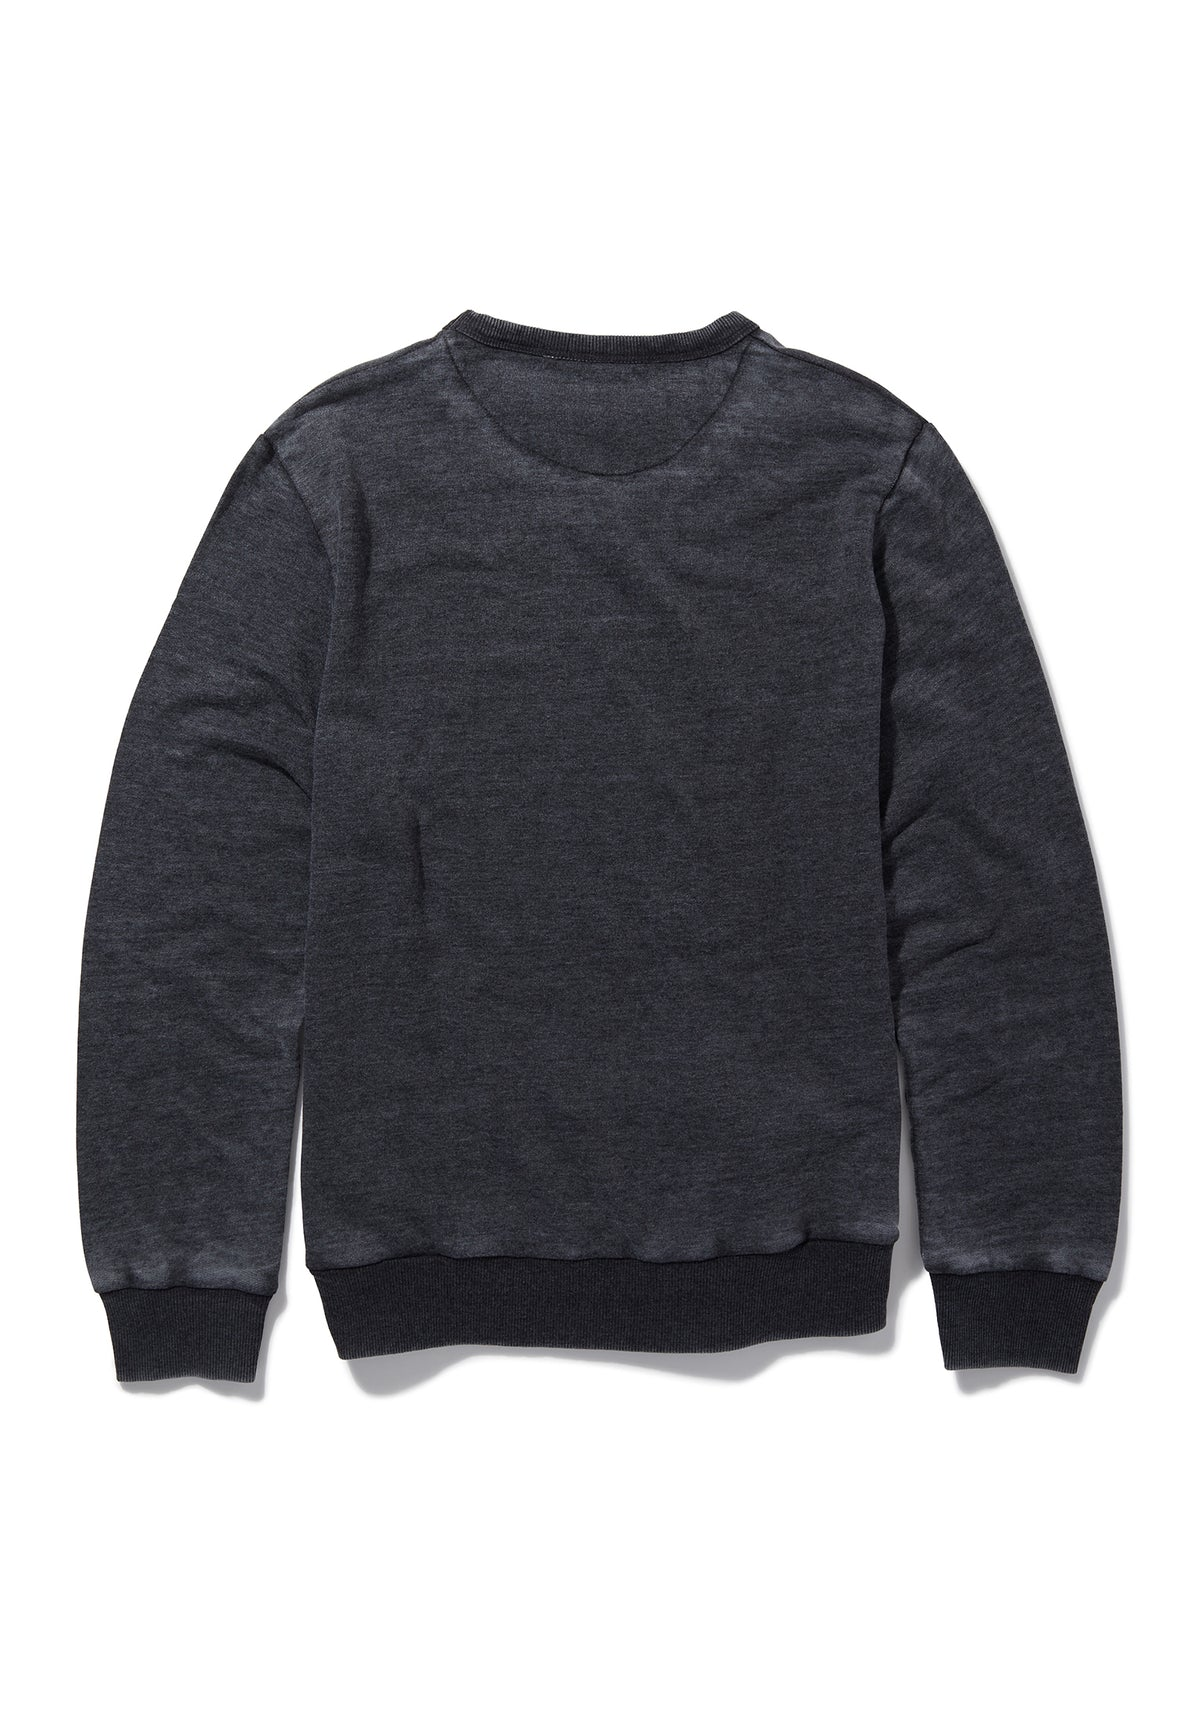 Recovered Garfield Pocket Place Charcoal  Sweatshirt